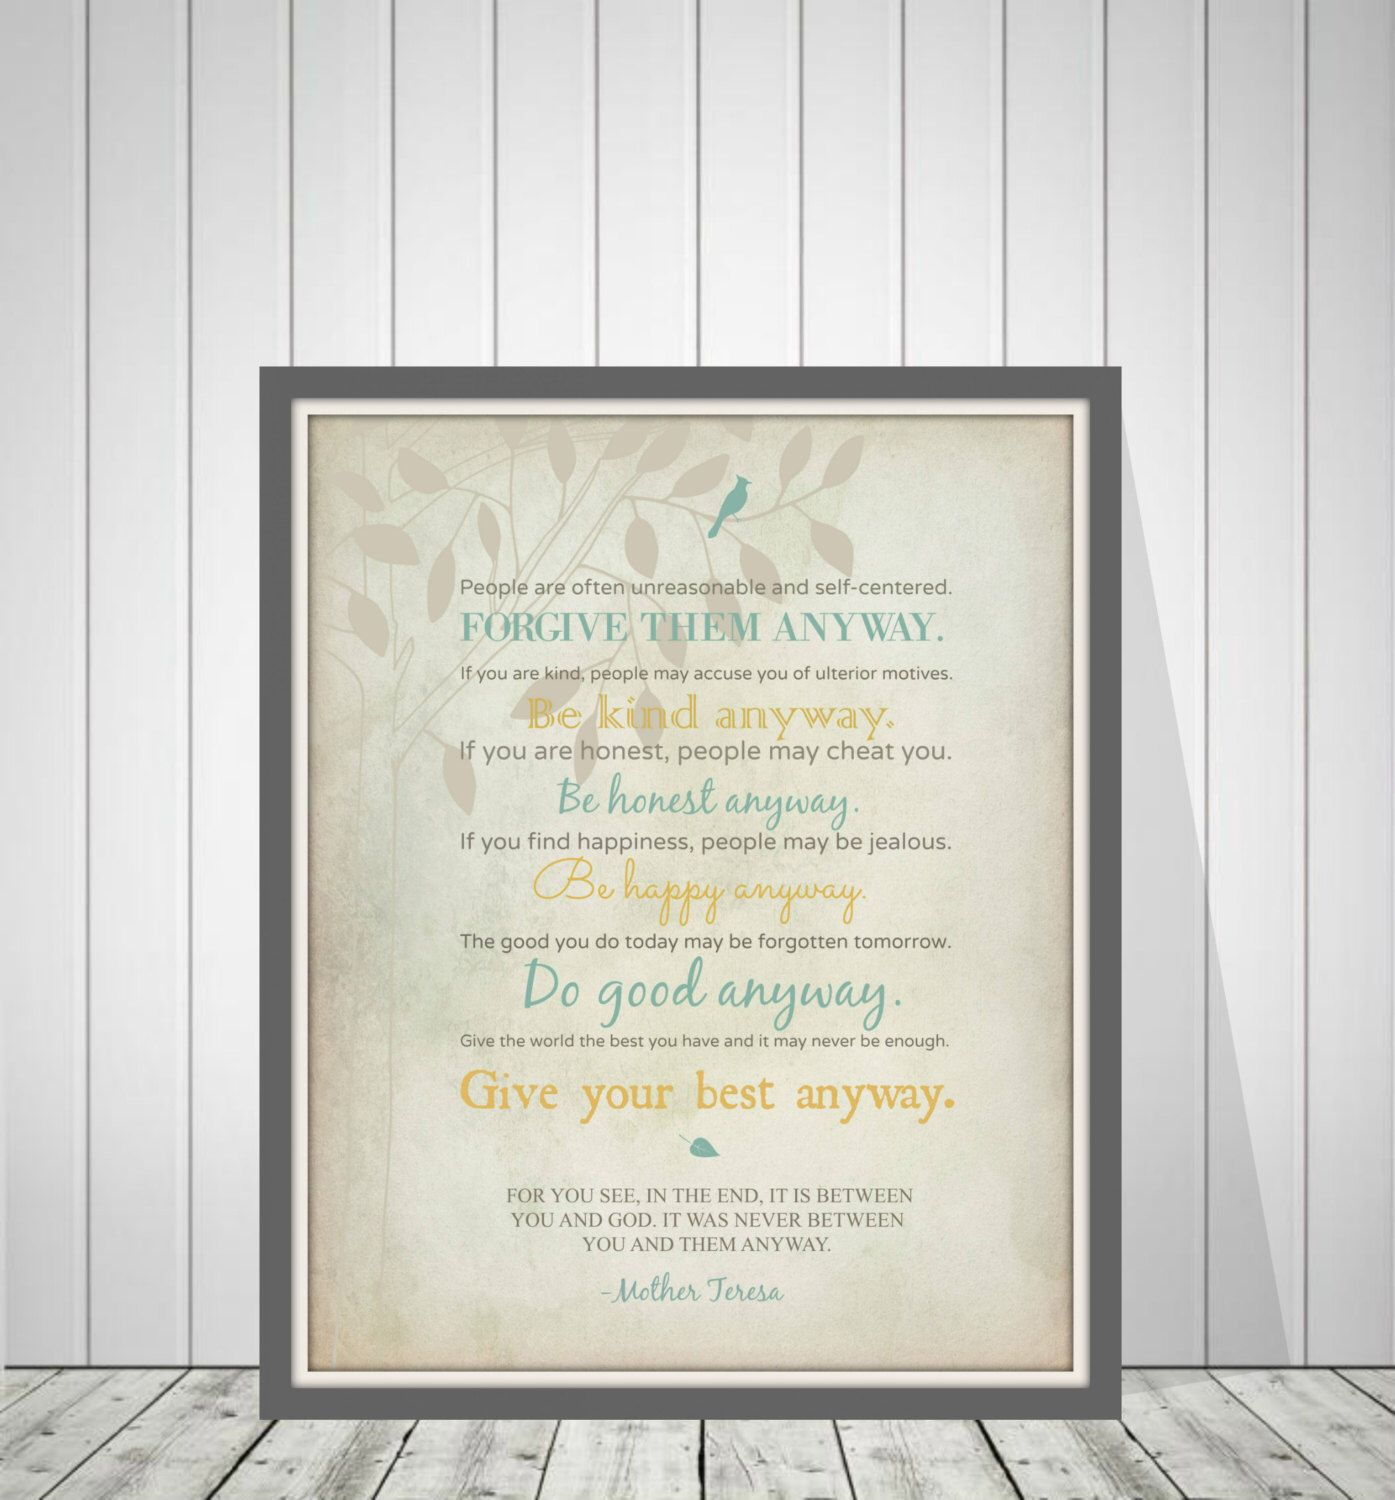 Pin by Kimberly Davidson on Quotes for Artwork | Pinterest | Mother ...